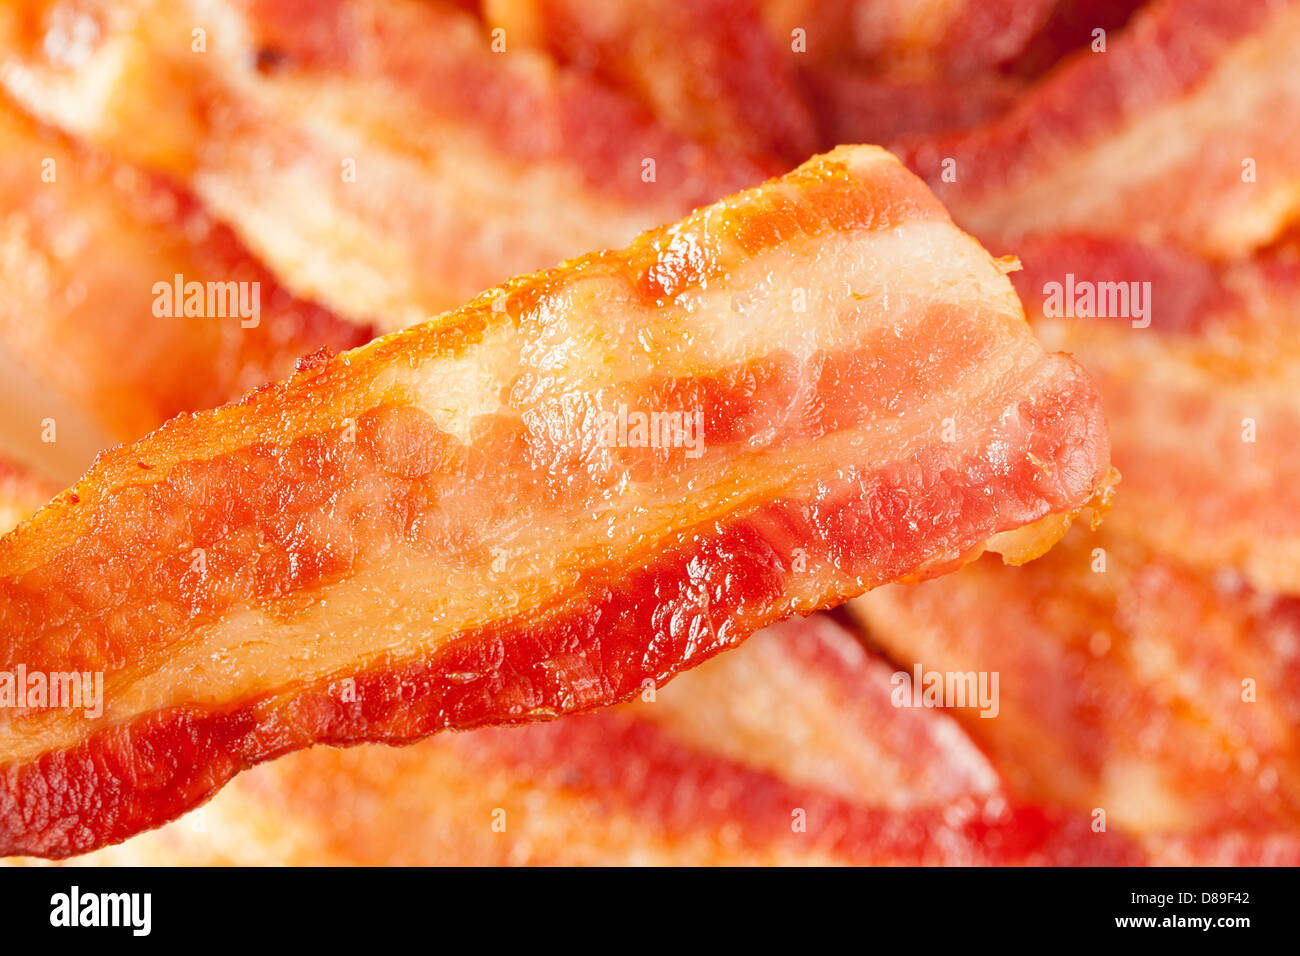 Cooked Greasy Bacon against a back ground - Stock Image